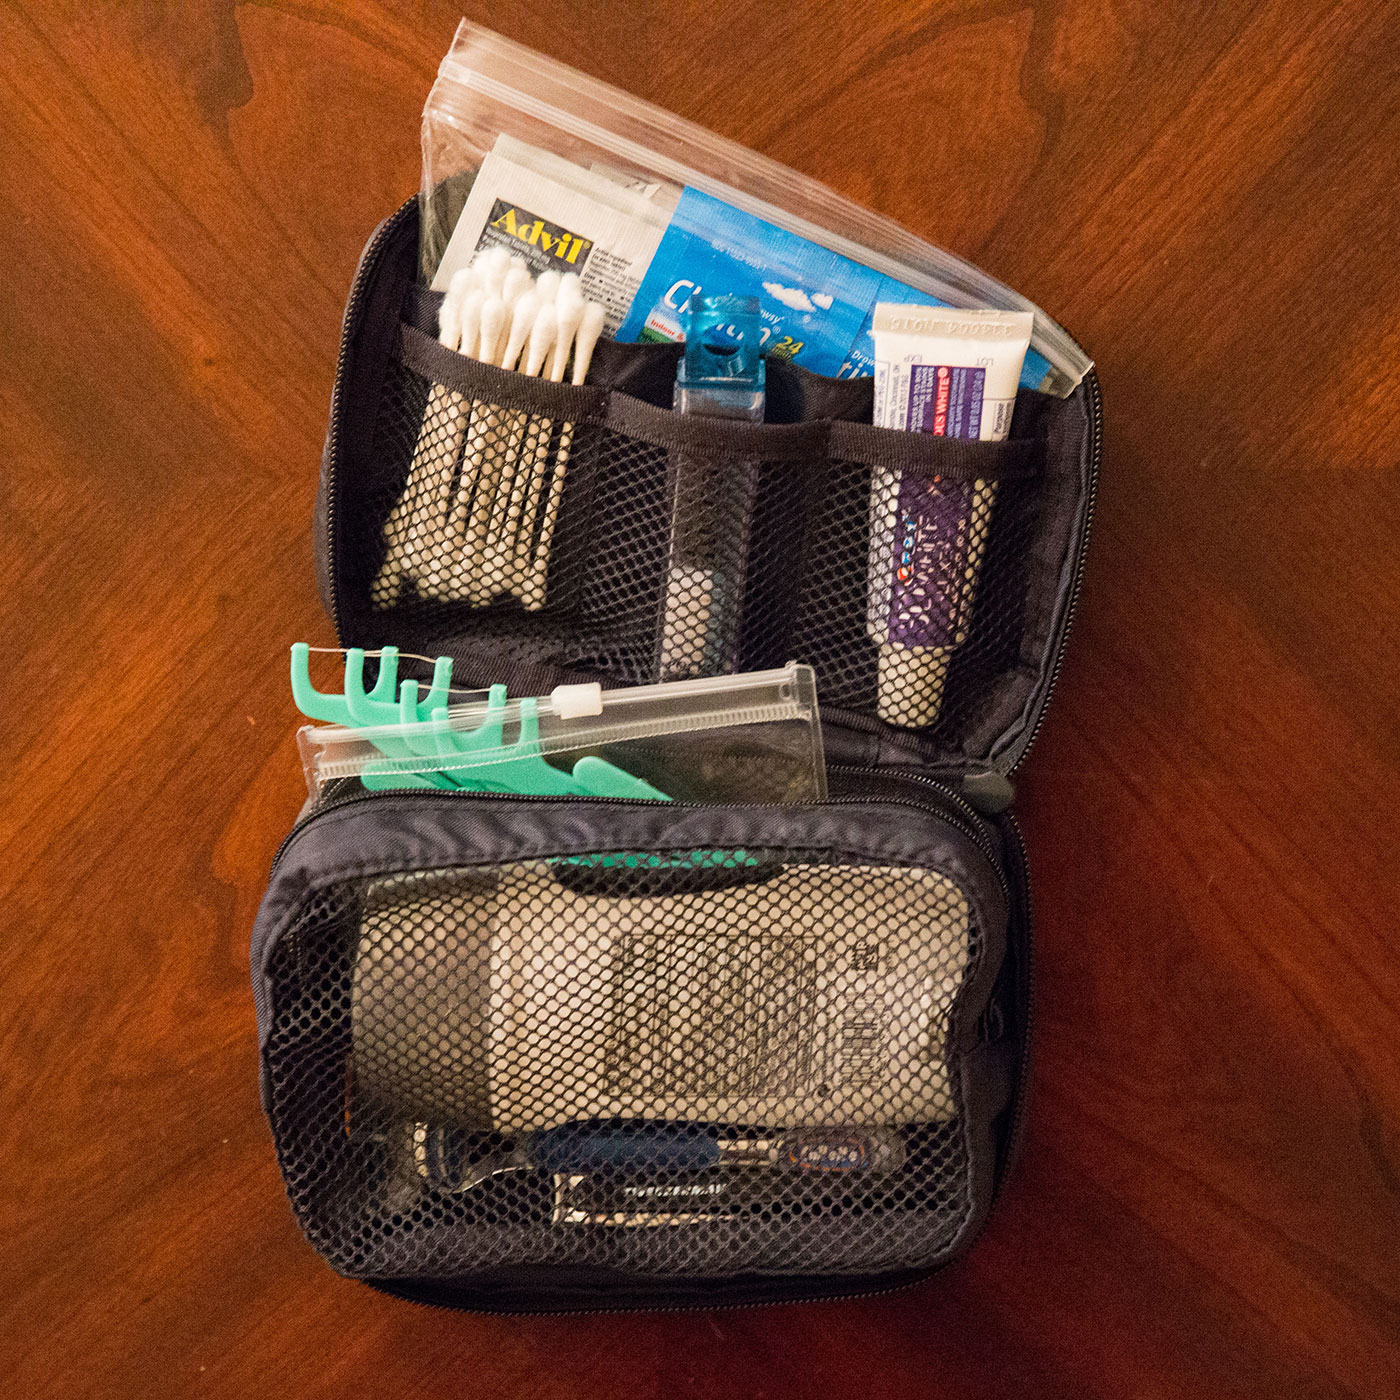 Ultralight packing list how to pack light travel with 1 bag for Minimalist household items